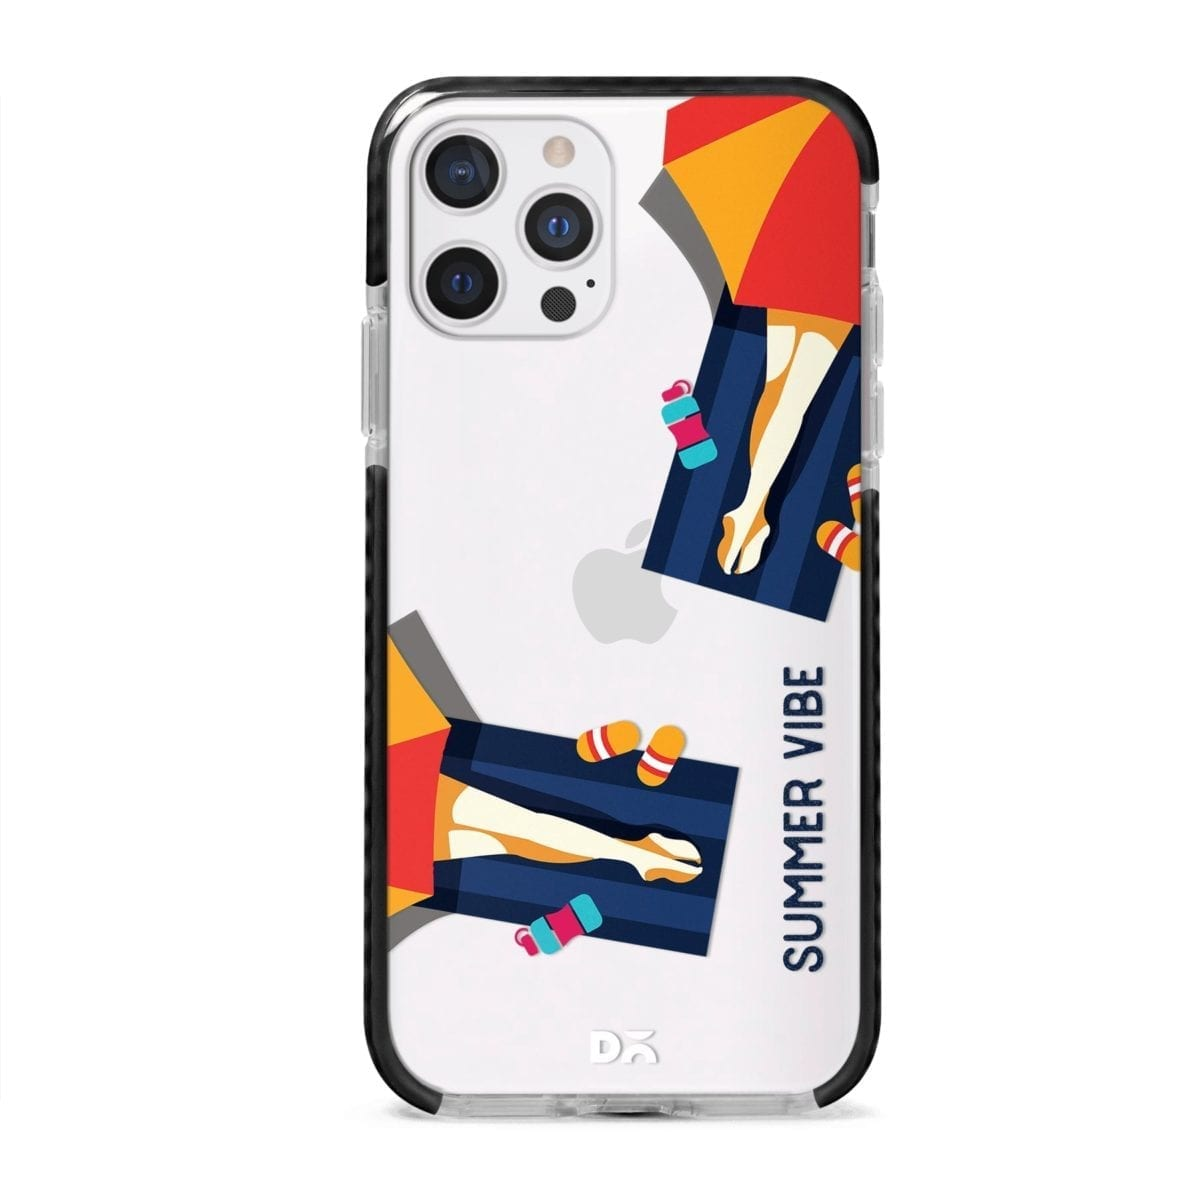 Summery Vibe Stride Case Cover for Apple iPhone 12 Pro and Apple iPhone 12 Pro Max with great design and shock proof | Klippik | Online Shopping | Kuwait UAE Saudi